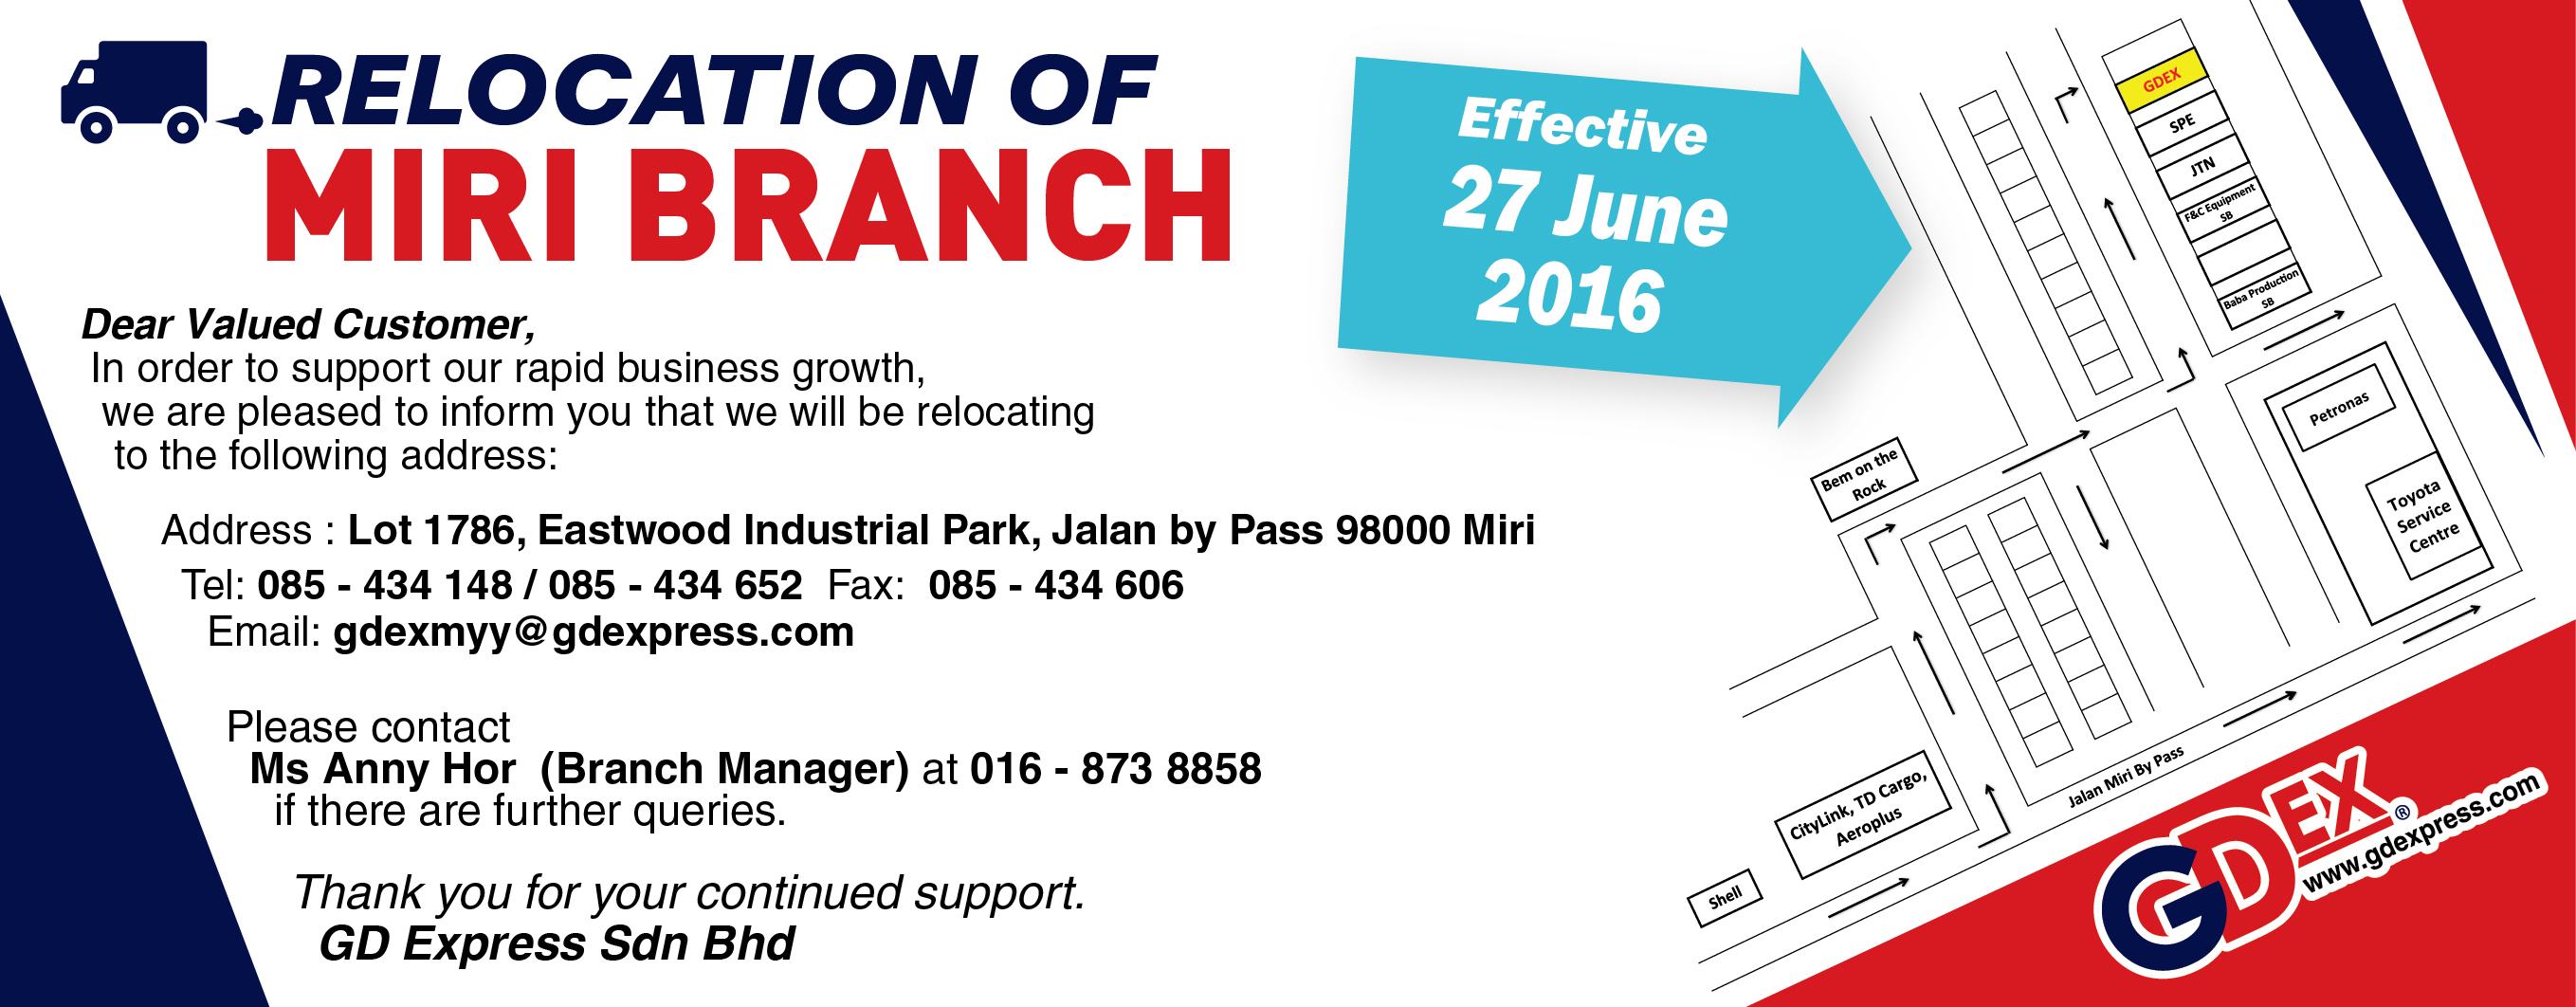 Miri Branch Relocation